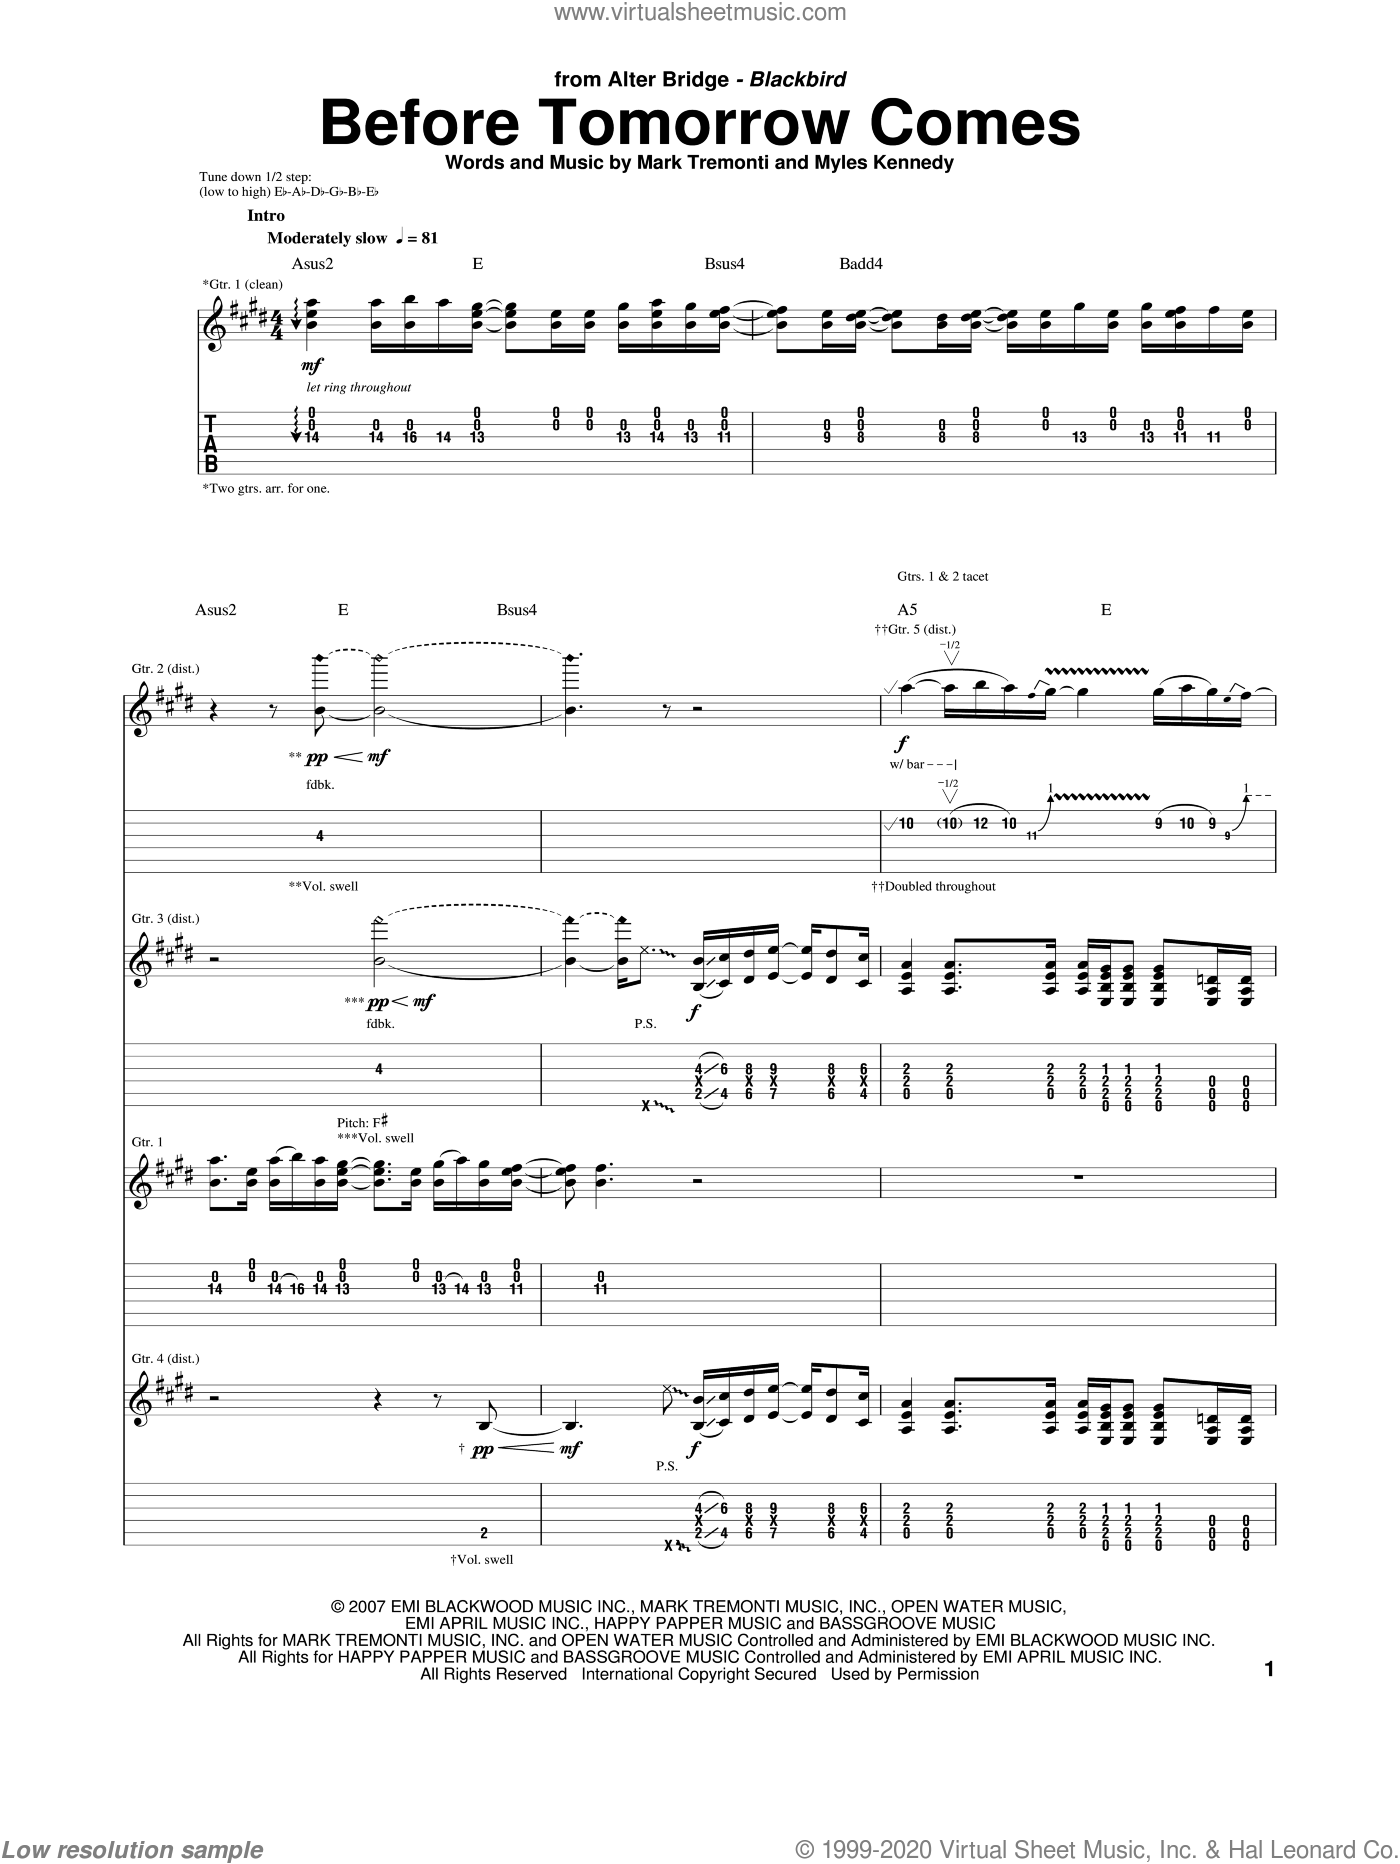 Before Tomorrow Comes sheet music for guitar (tablature) by Alter Bridge and Mark Tremonti. Score Image Preview.